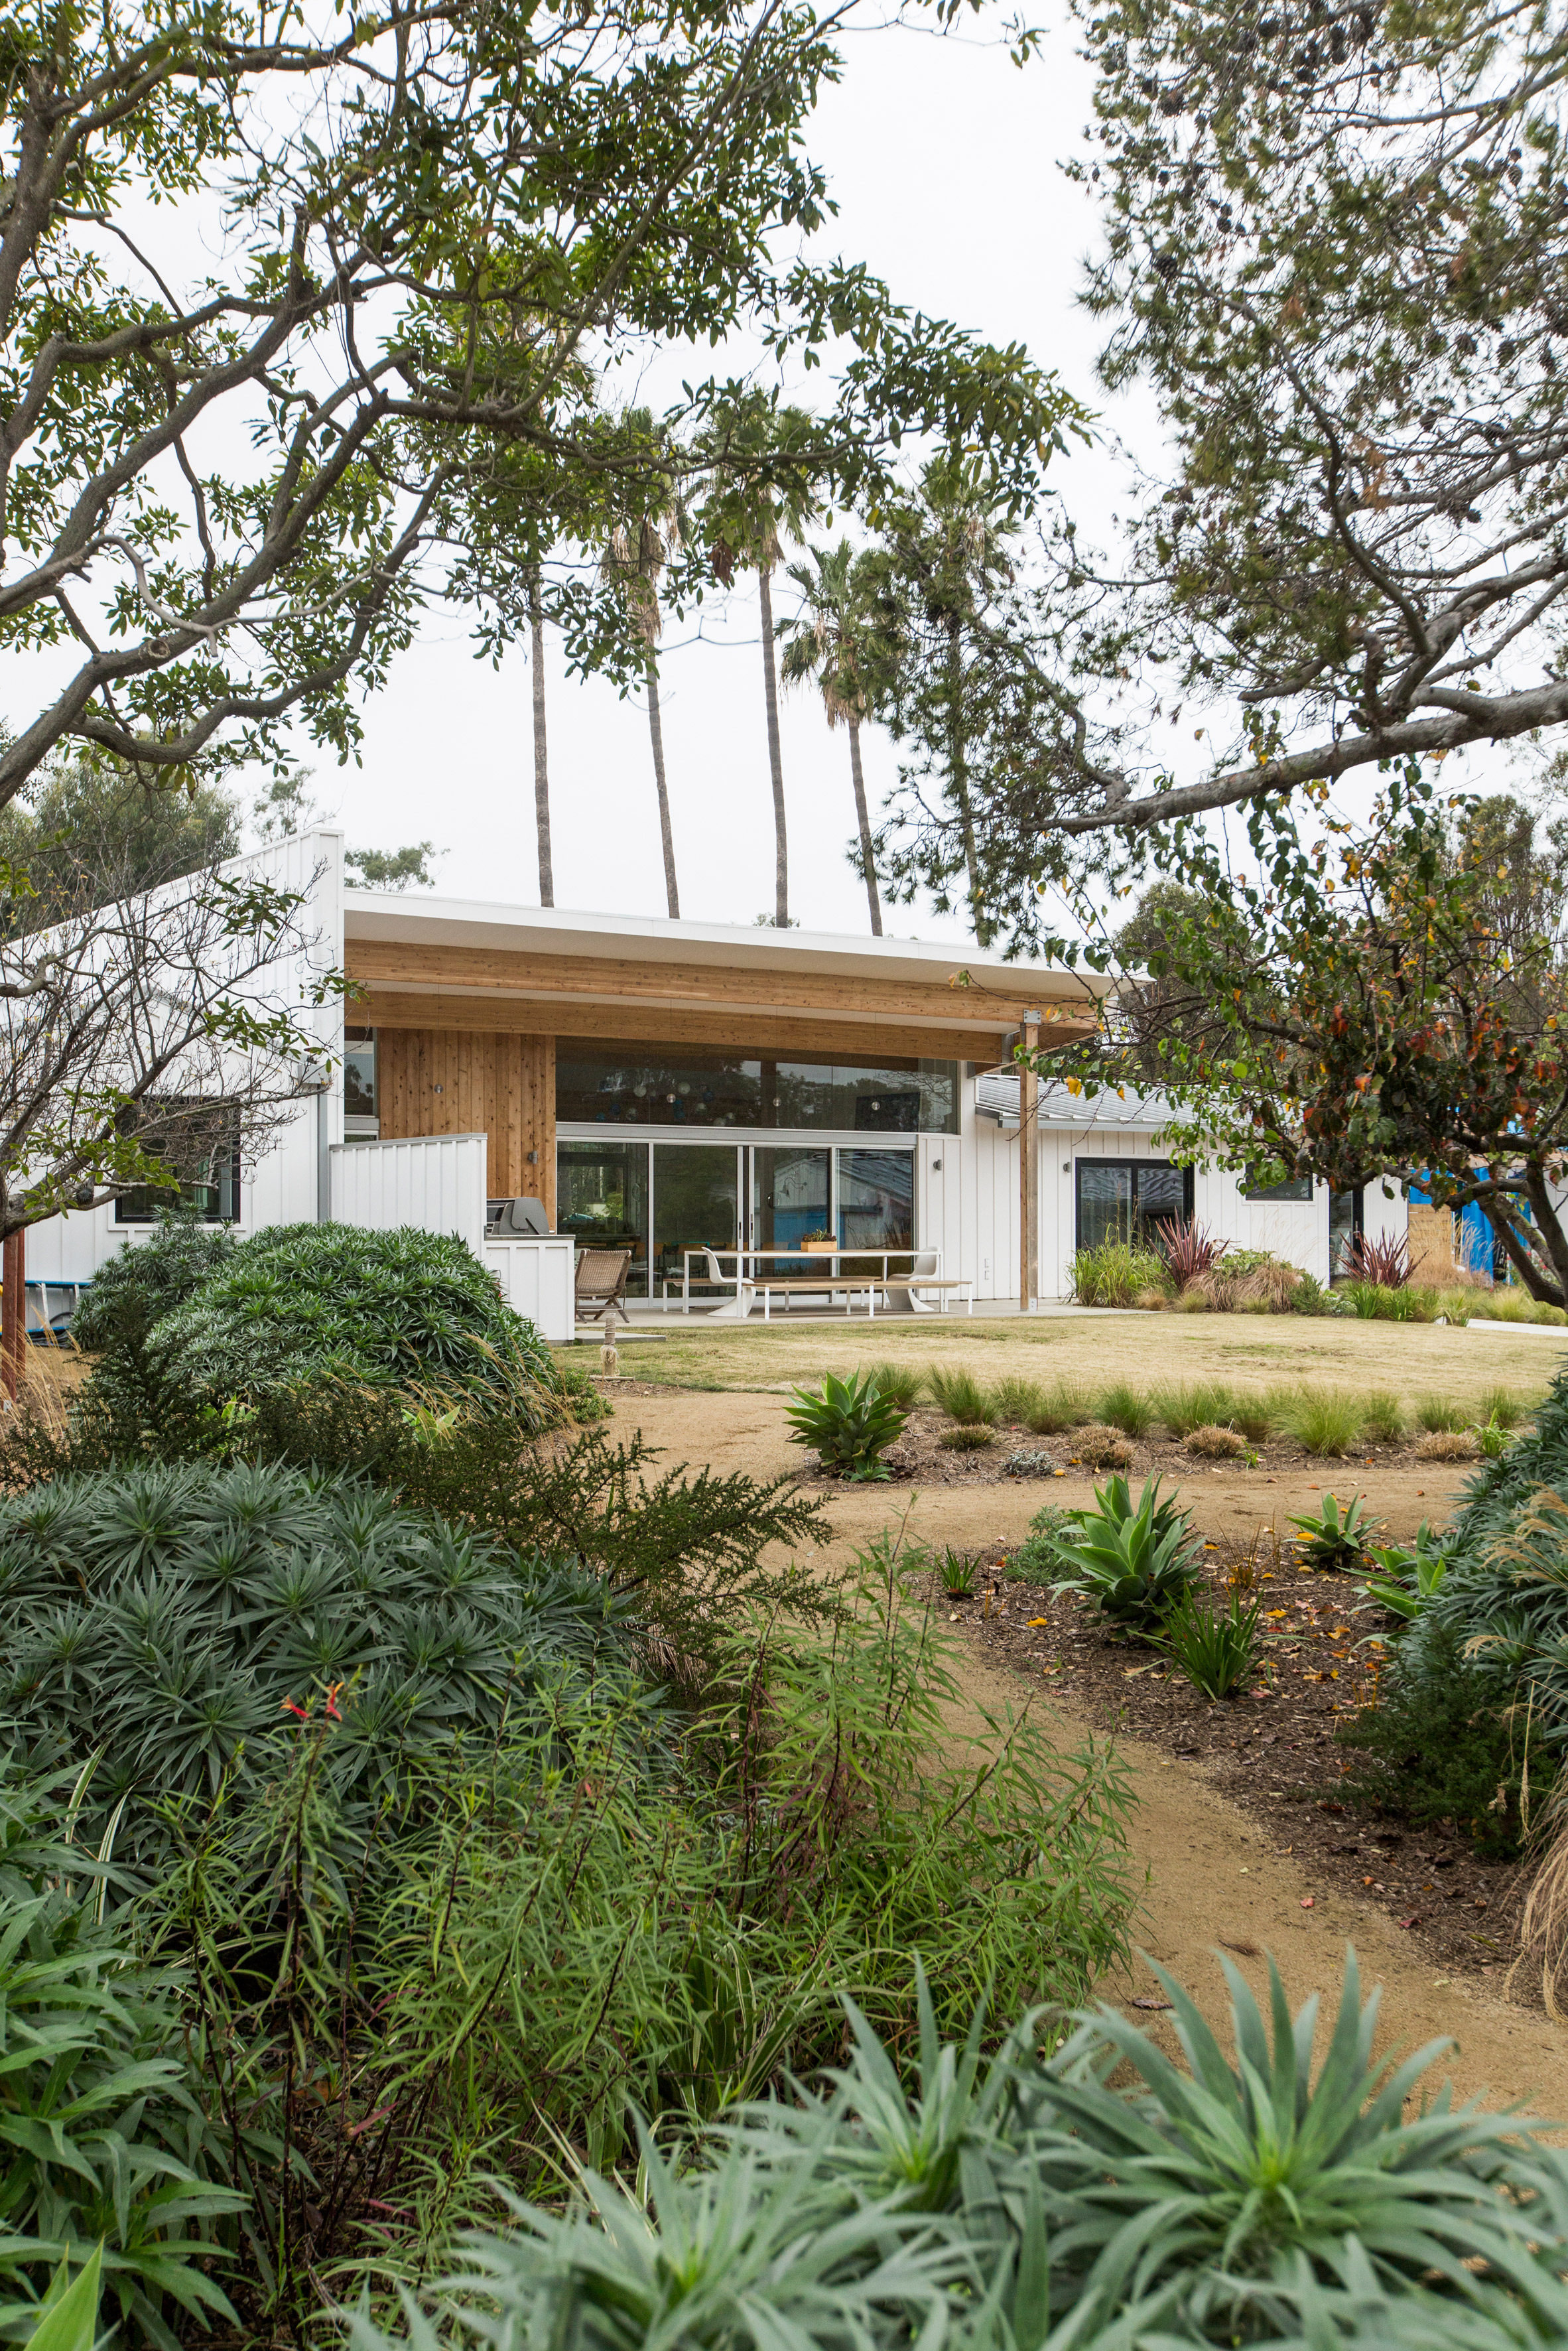 Bestor Architecture creates Malibu beach home for Beastie Boys rapper